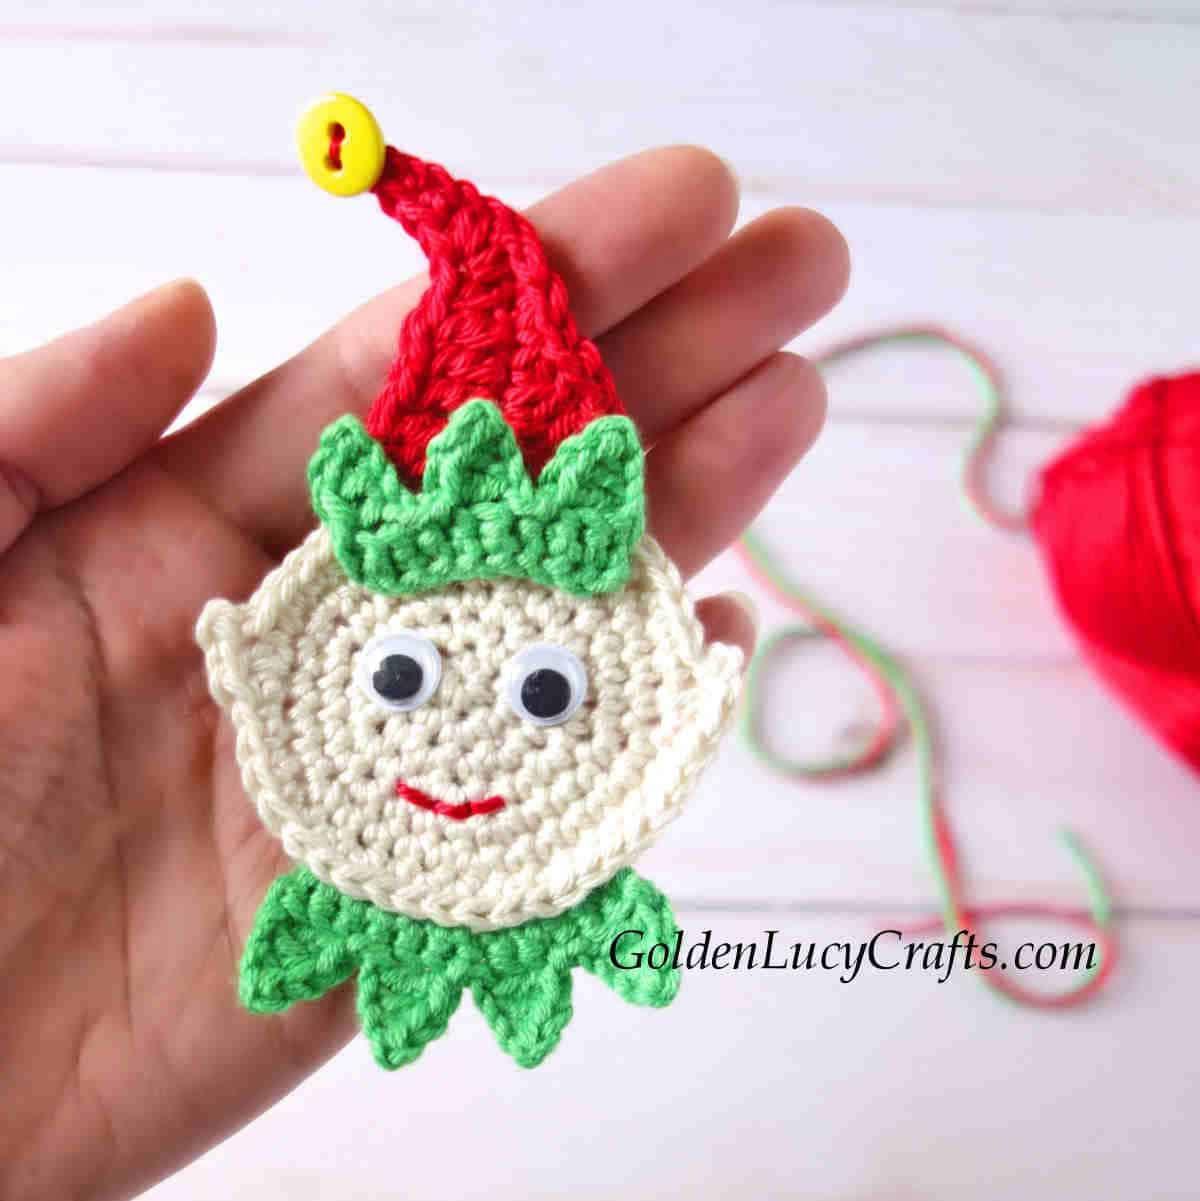 Crocheted elf applique in the palm of a hand.